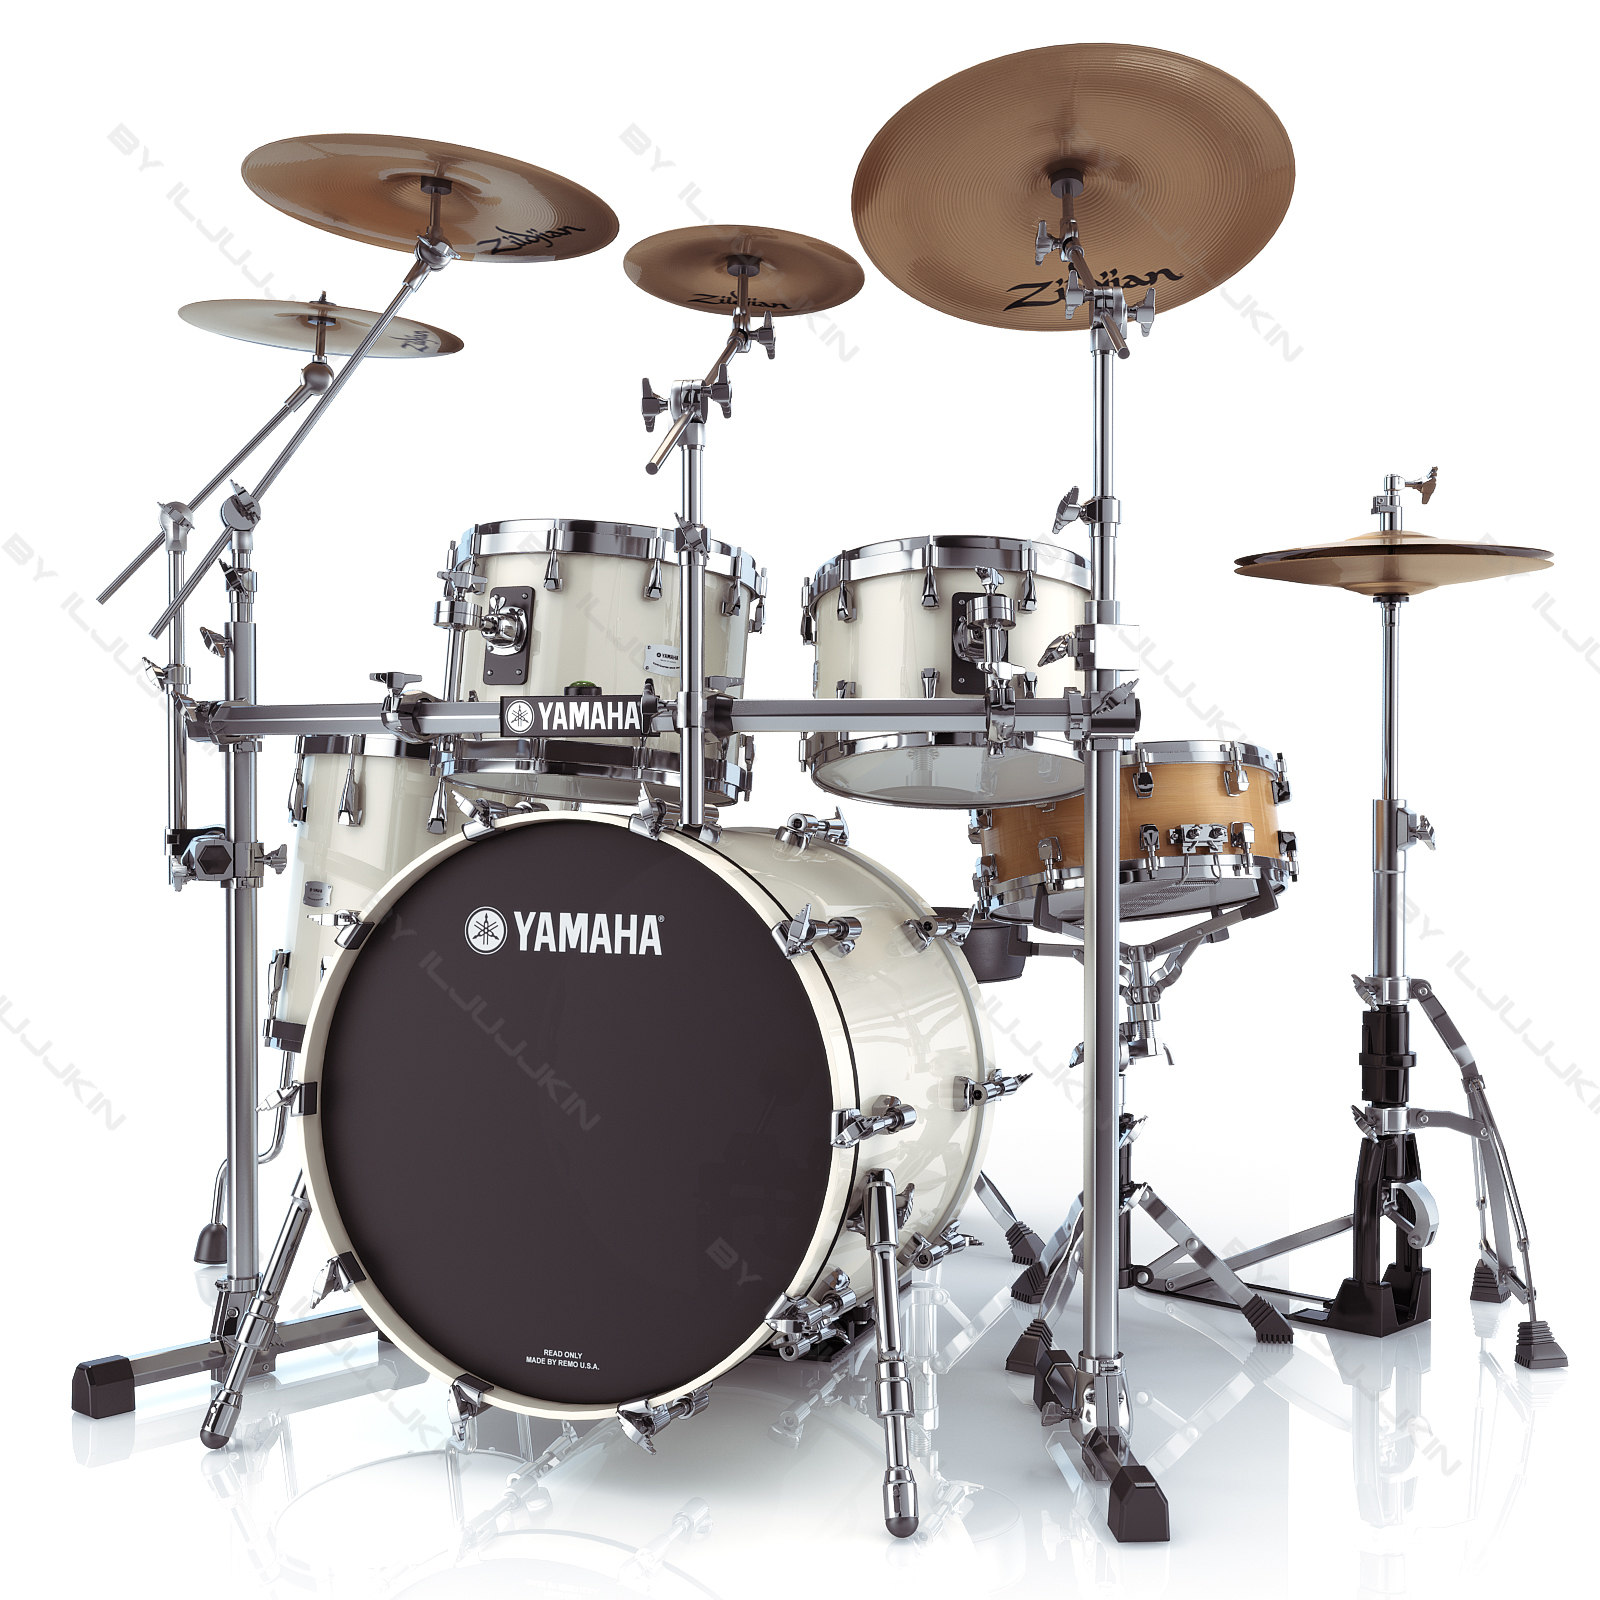 Drums_Yamaha_Absolute_Birch_0001.jpg